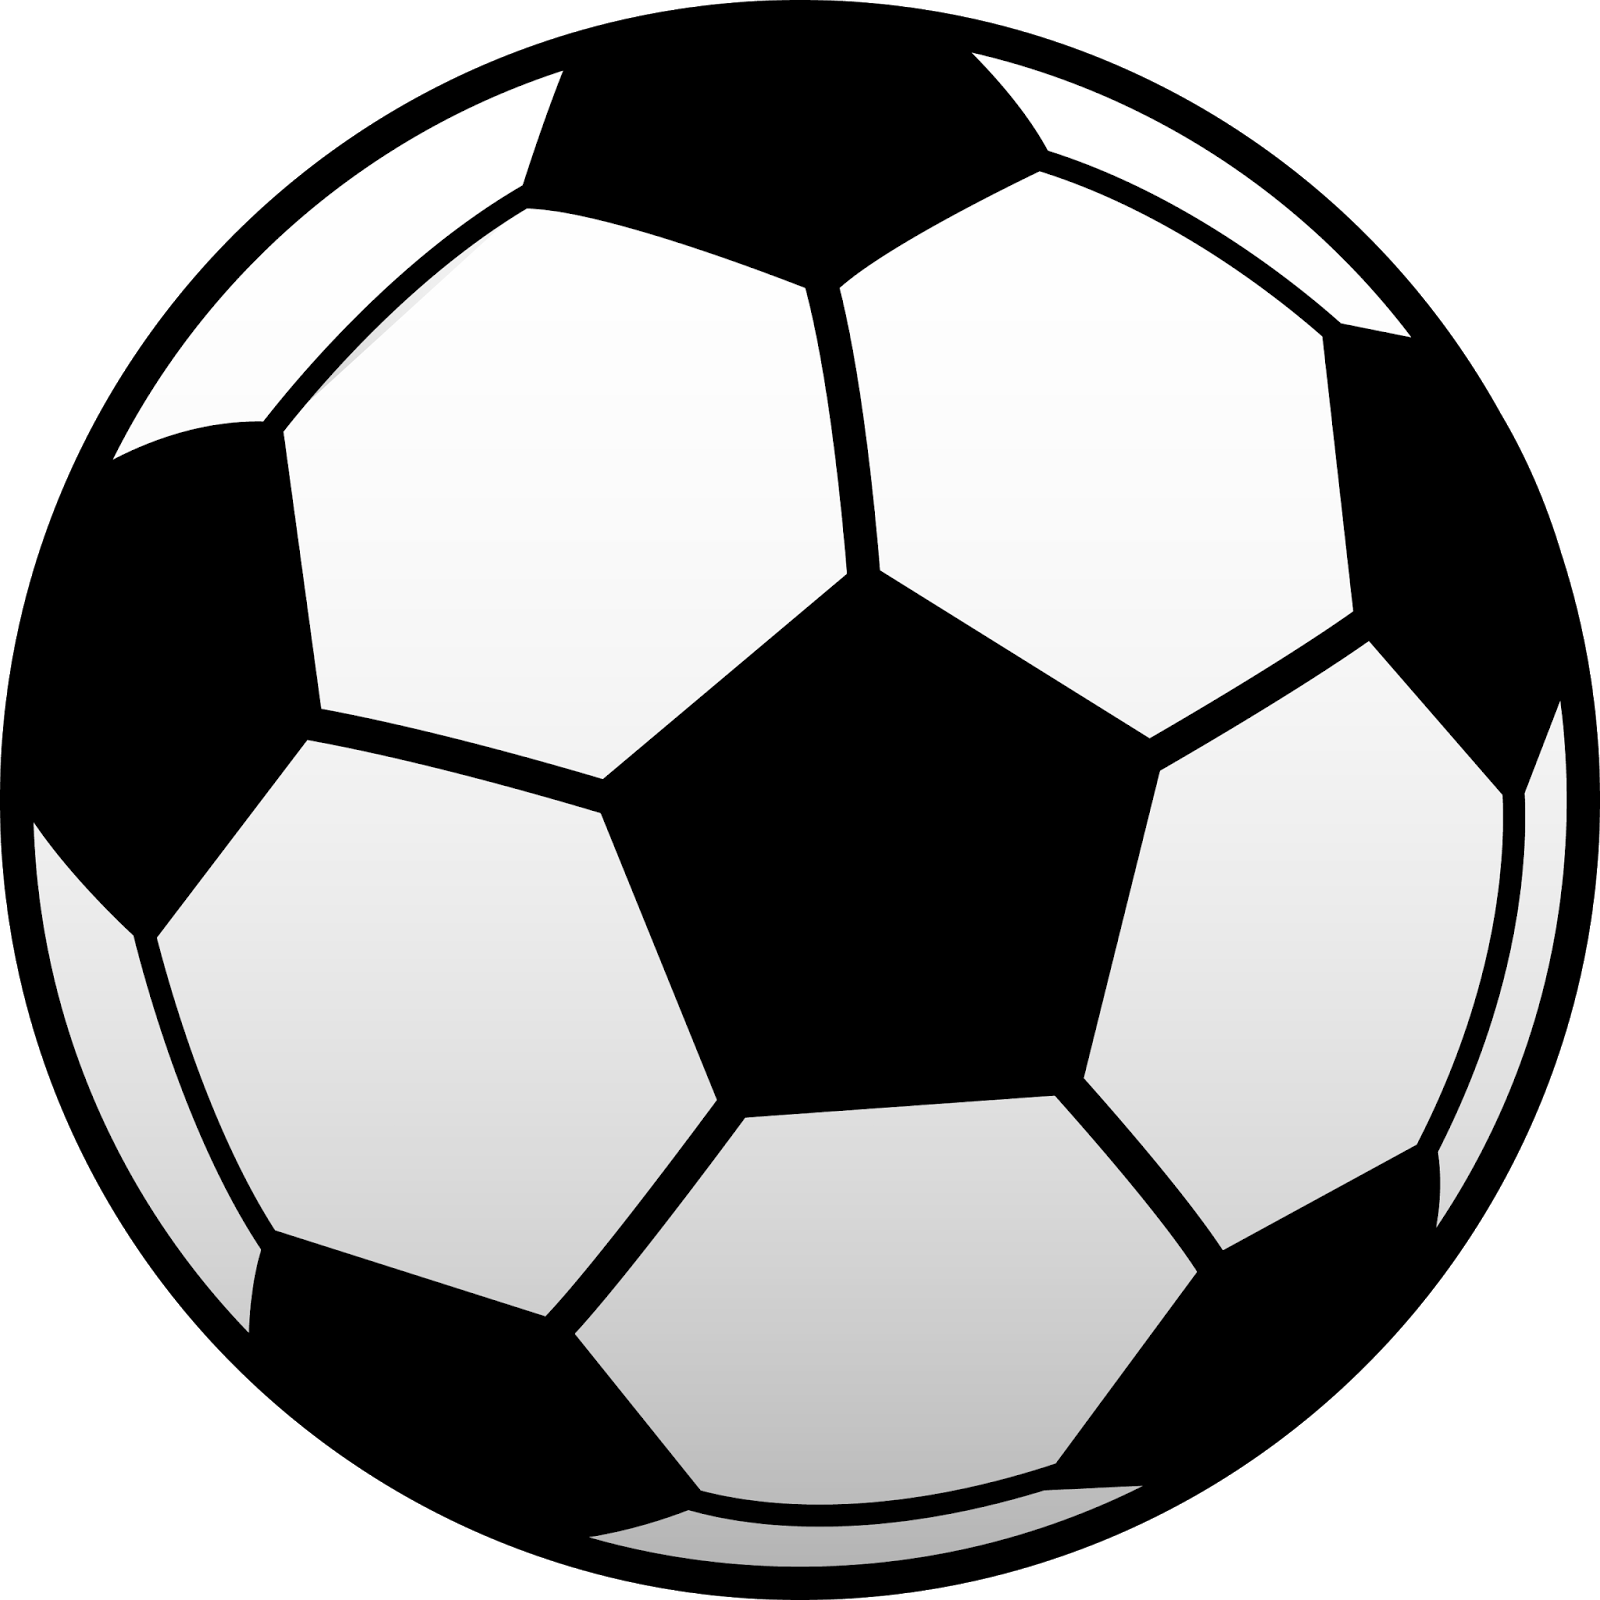 collection of sports. Football clipart outline